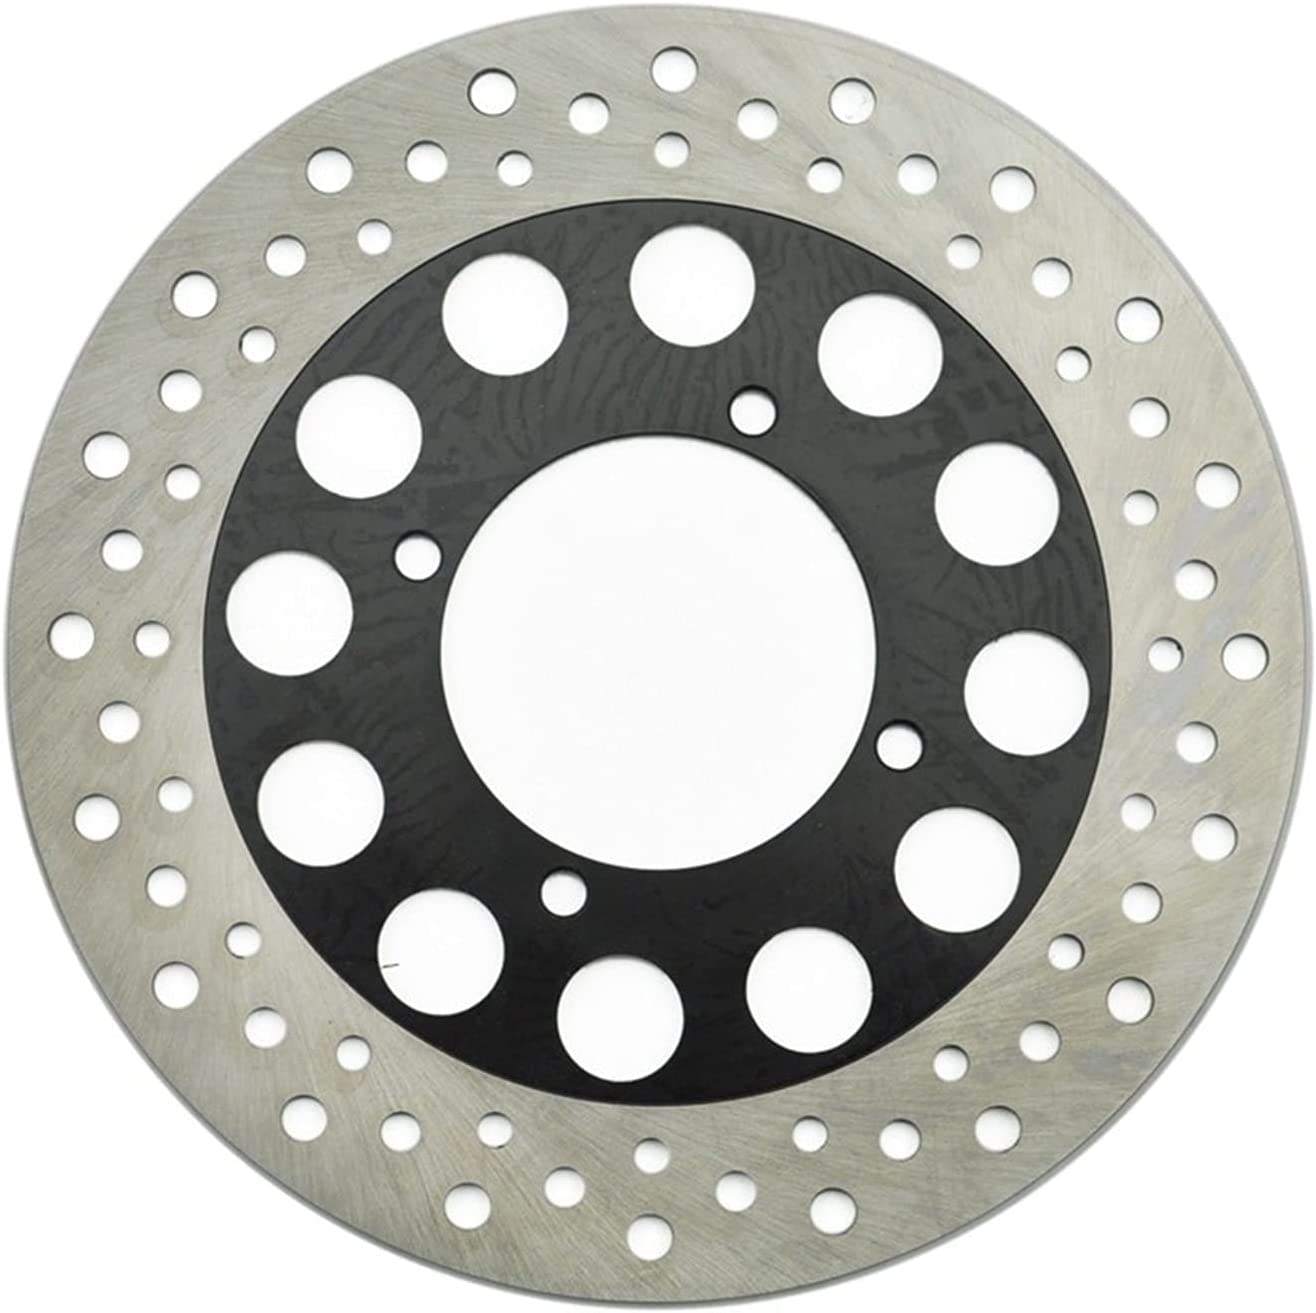 Motorcycle Brake Limited time sale Rotor Factory outlet Rear GSF4 Disc for